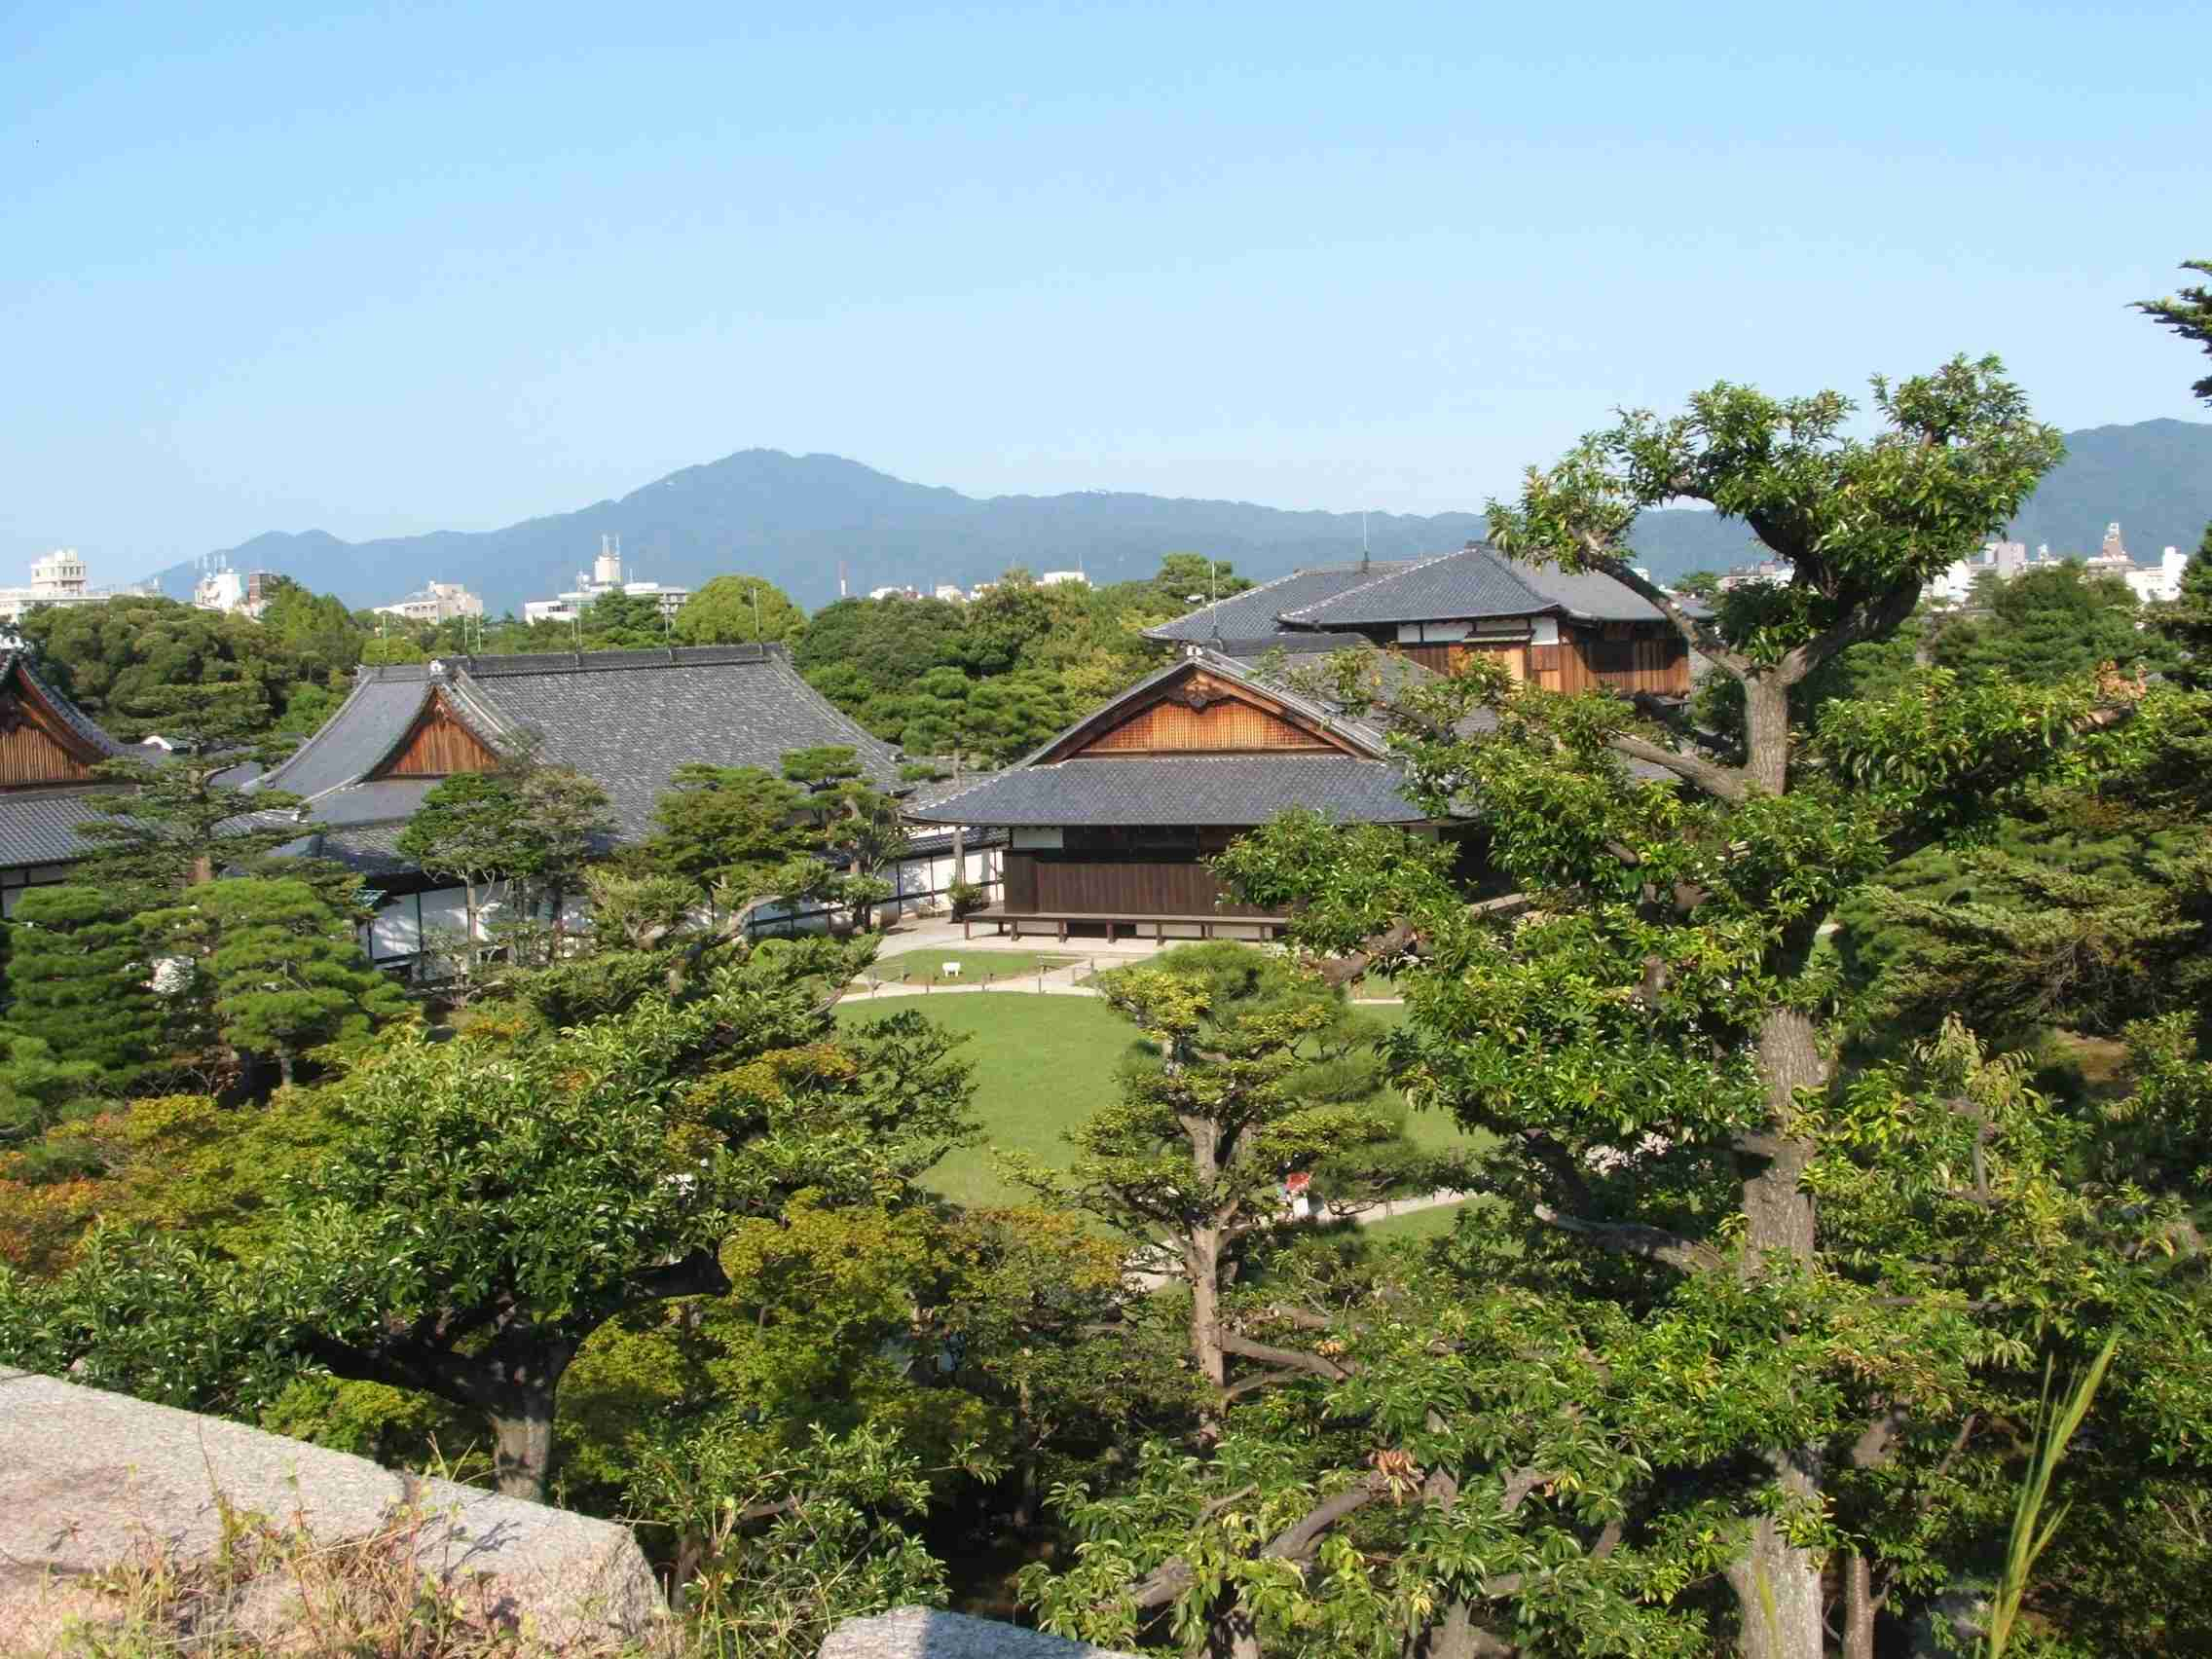 Kyoto is full of green spaces and dotted with temples. Photo: Elen Turner